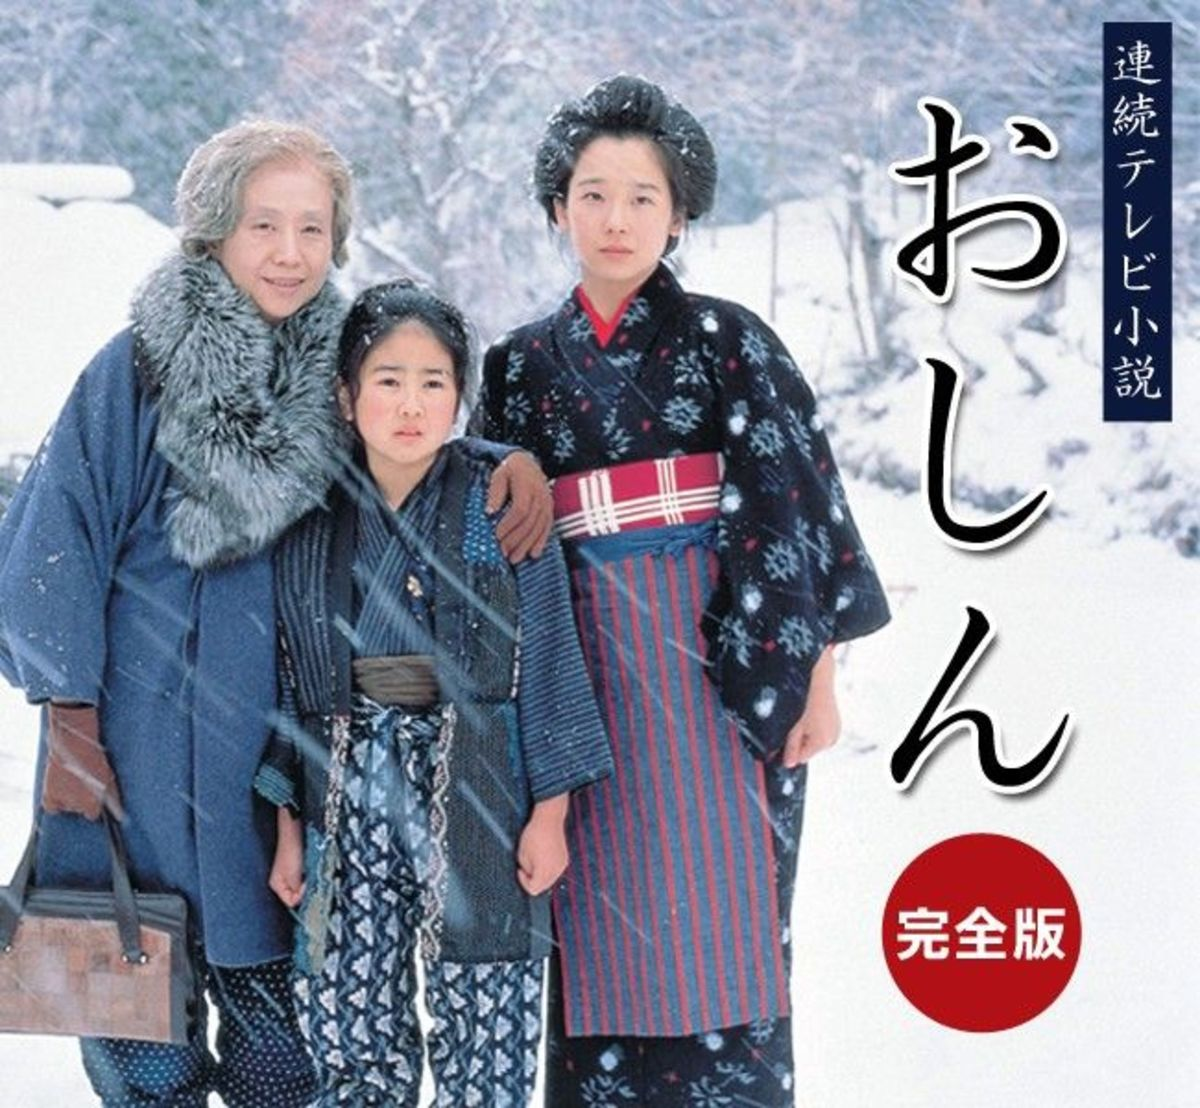 Top 5 Saddest and Most Emotional Japanese Dramas of All Time